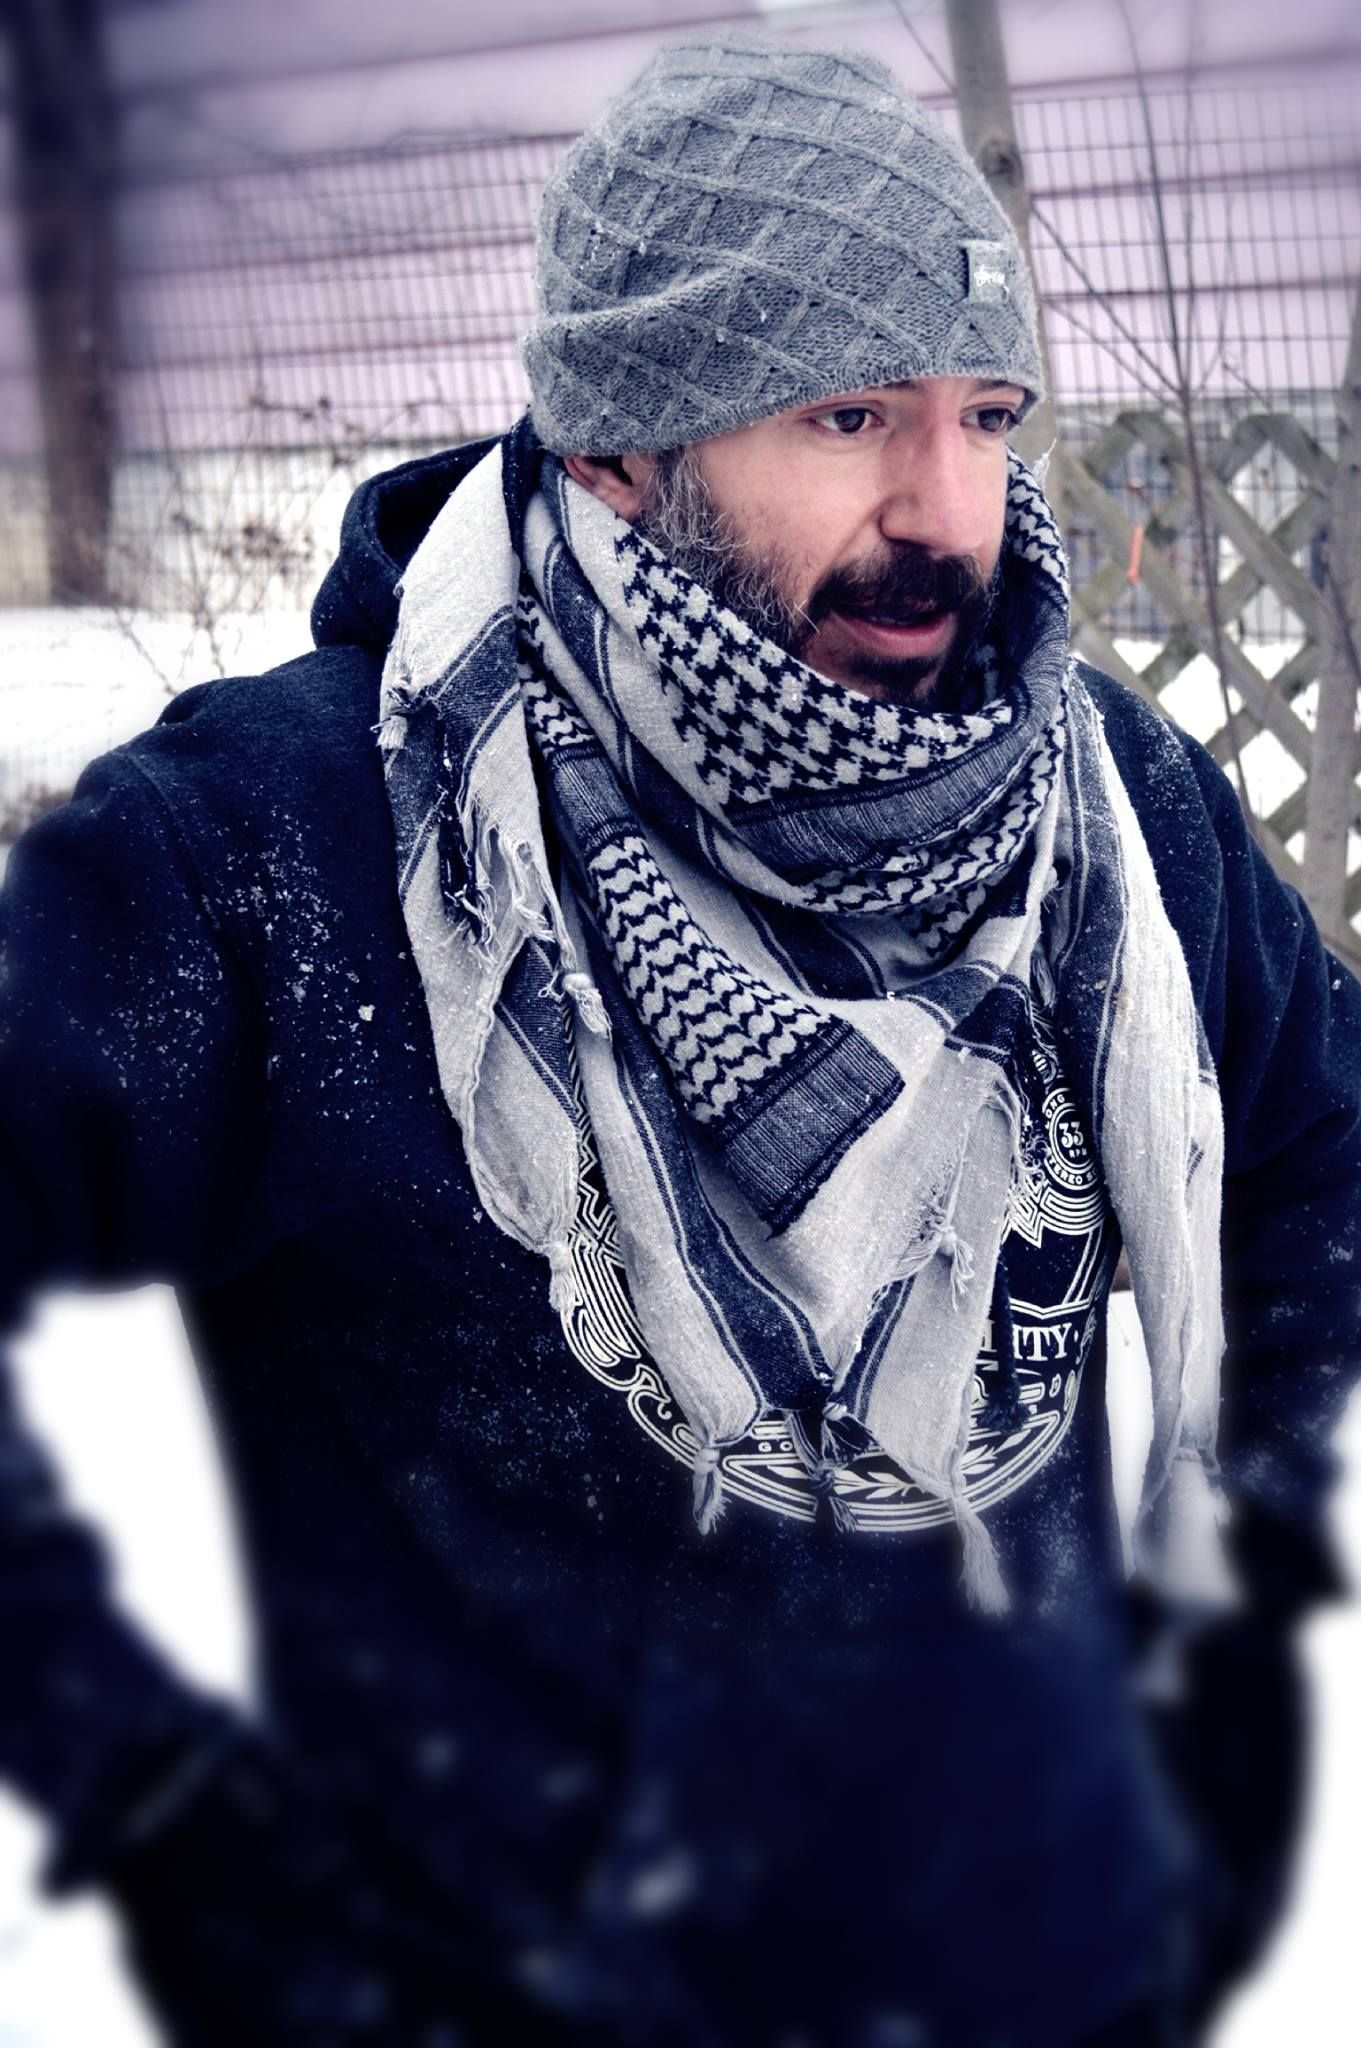 shemagh scarf - survival style | Shemagh Fashion ...